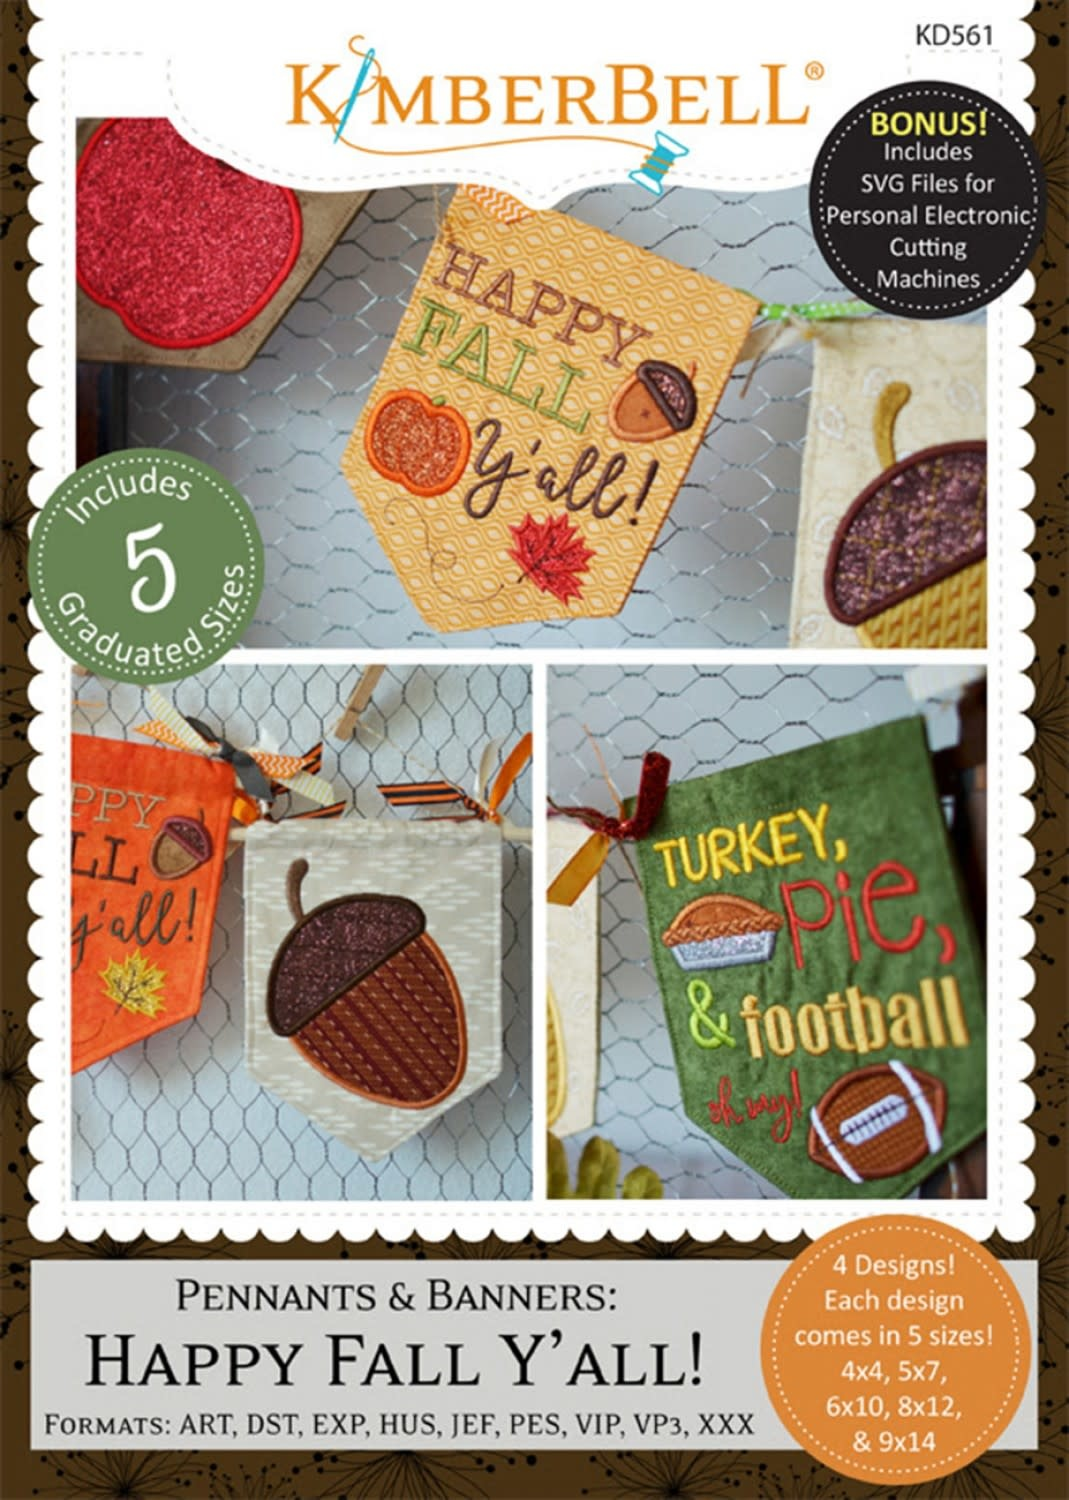 KIMBERBELL DESIGNS Pennants and Banners: Happy Fall Y'All